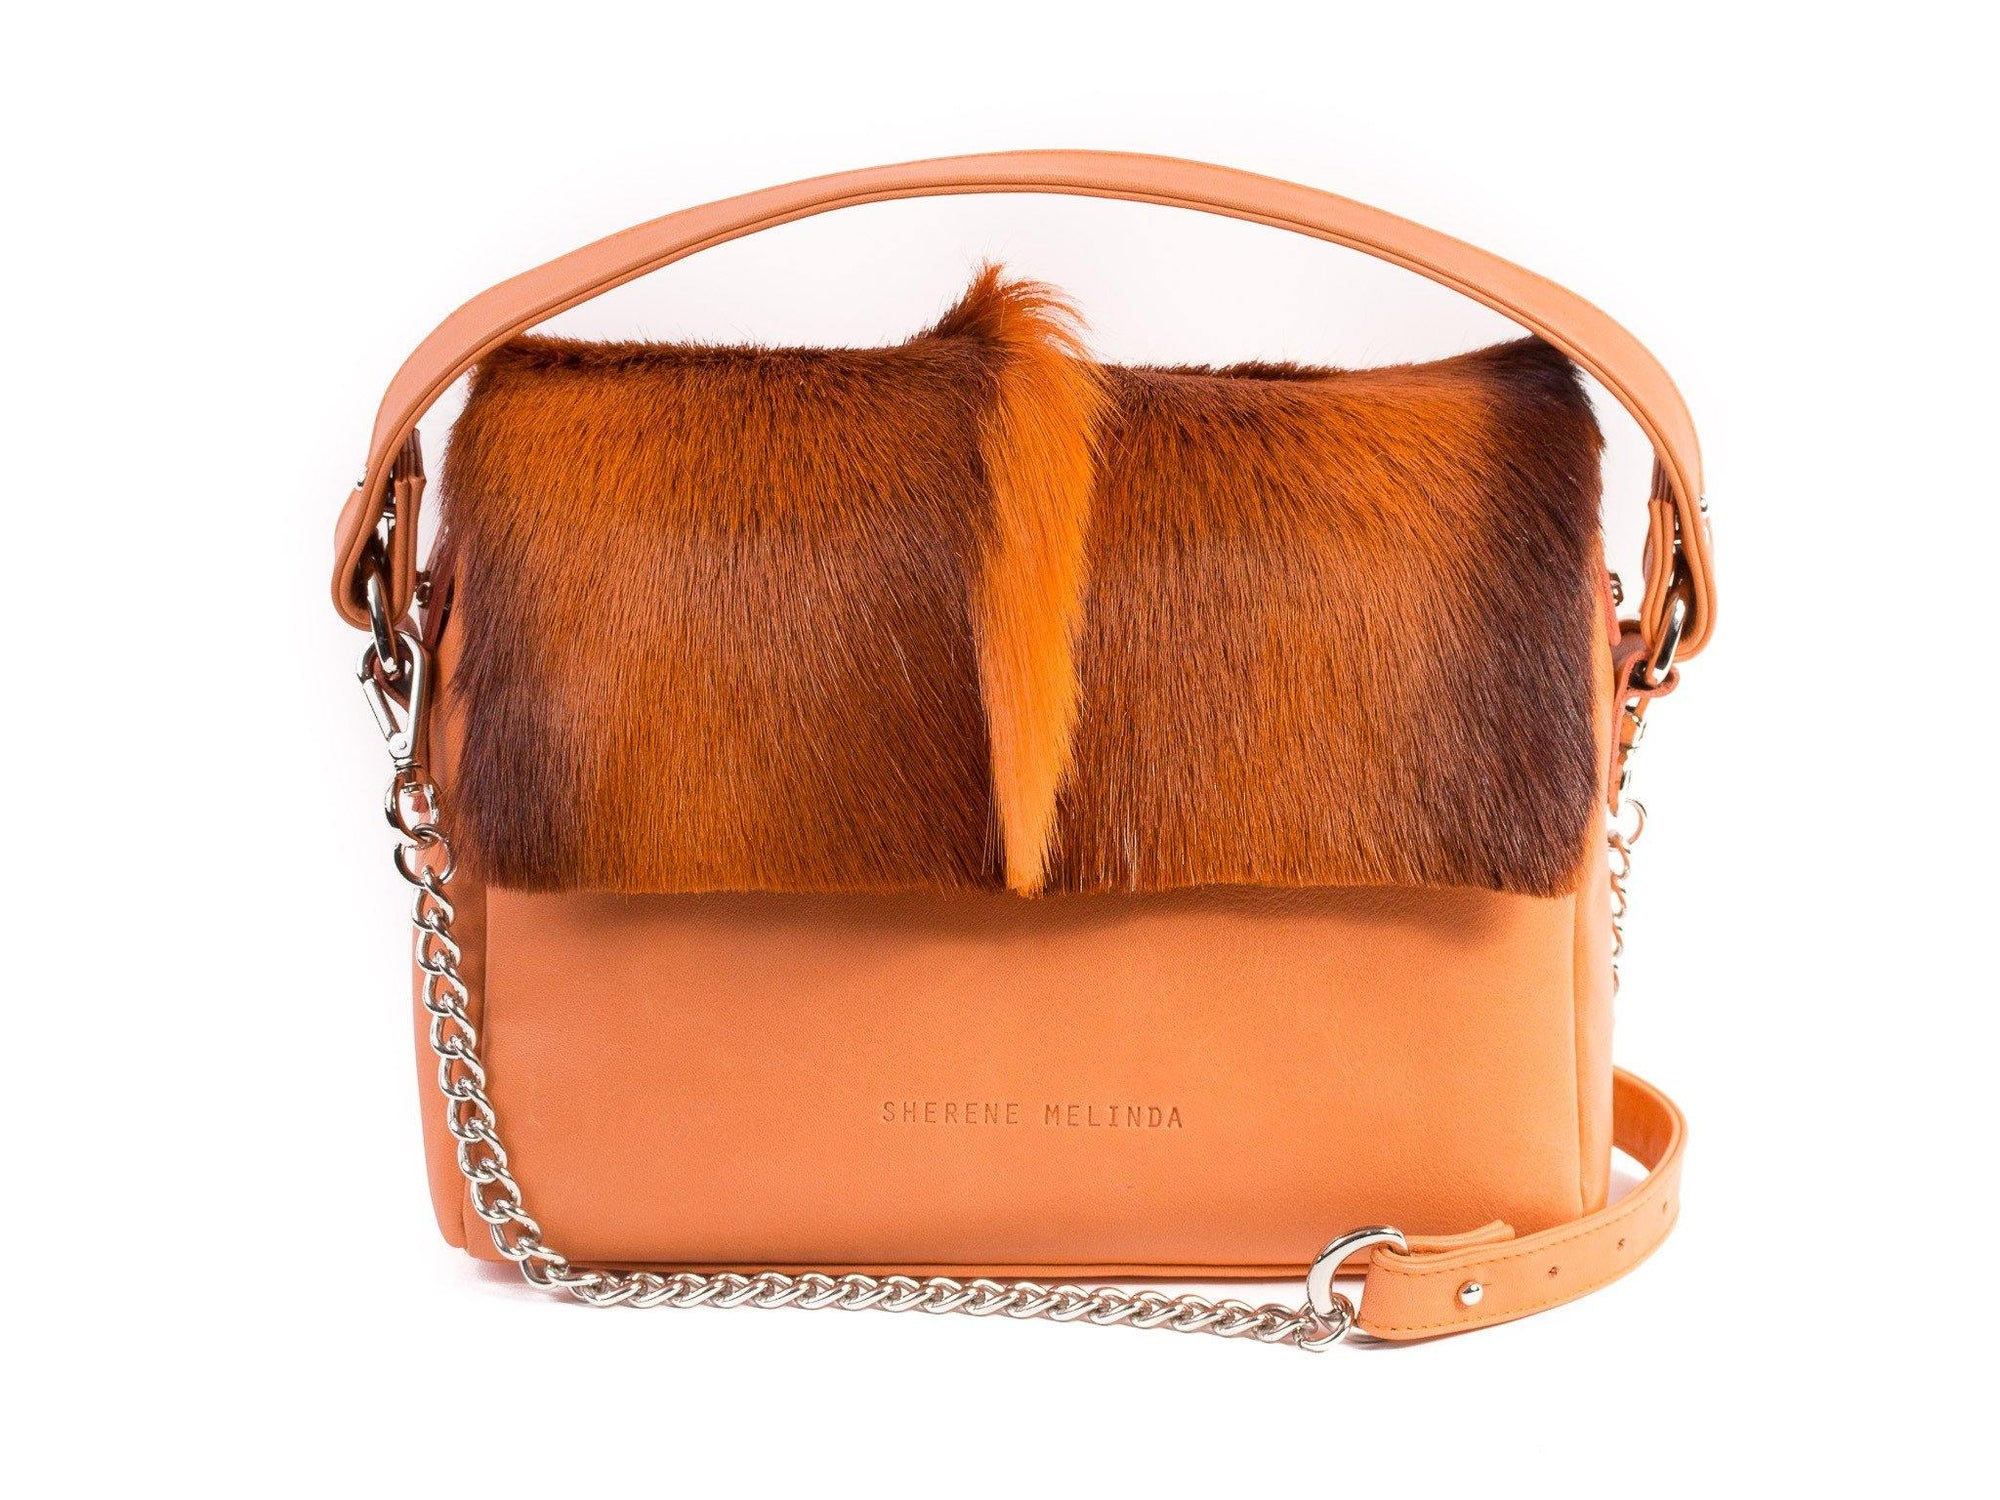 Orange Leather Satchel Handbag with a Fan - SHERENE MELINDA